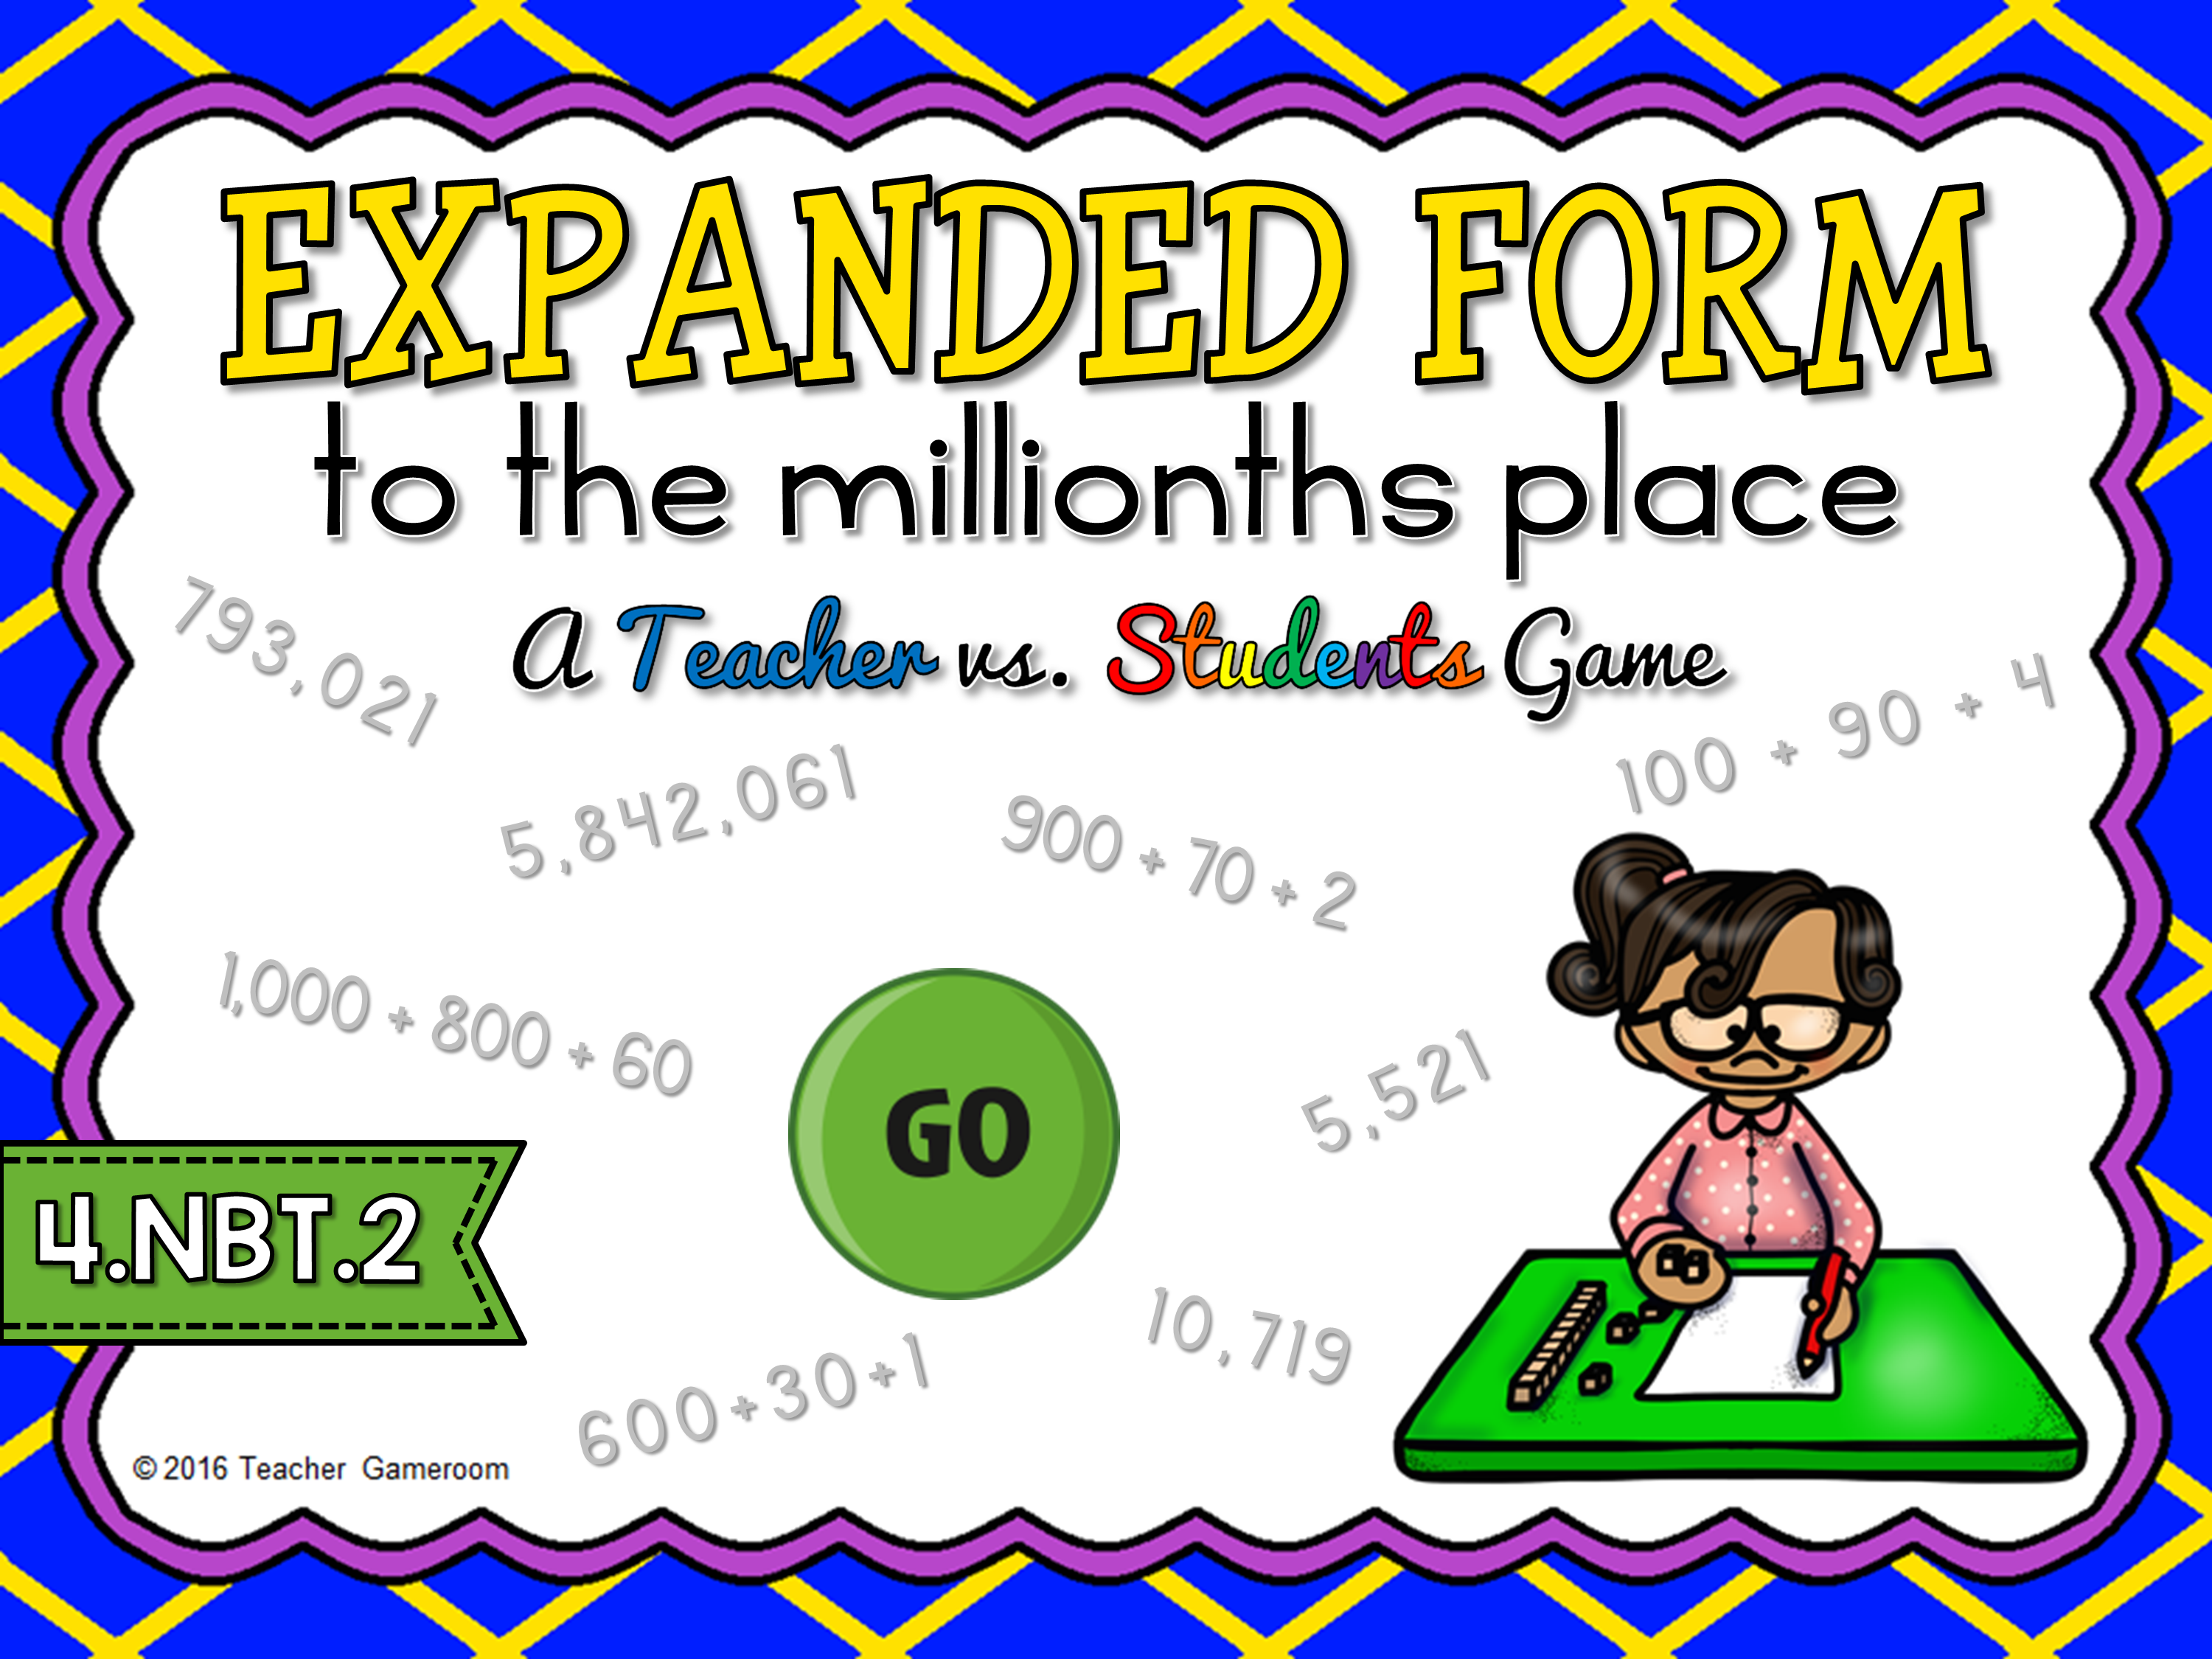 Expanded Form to the Millions Game